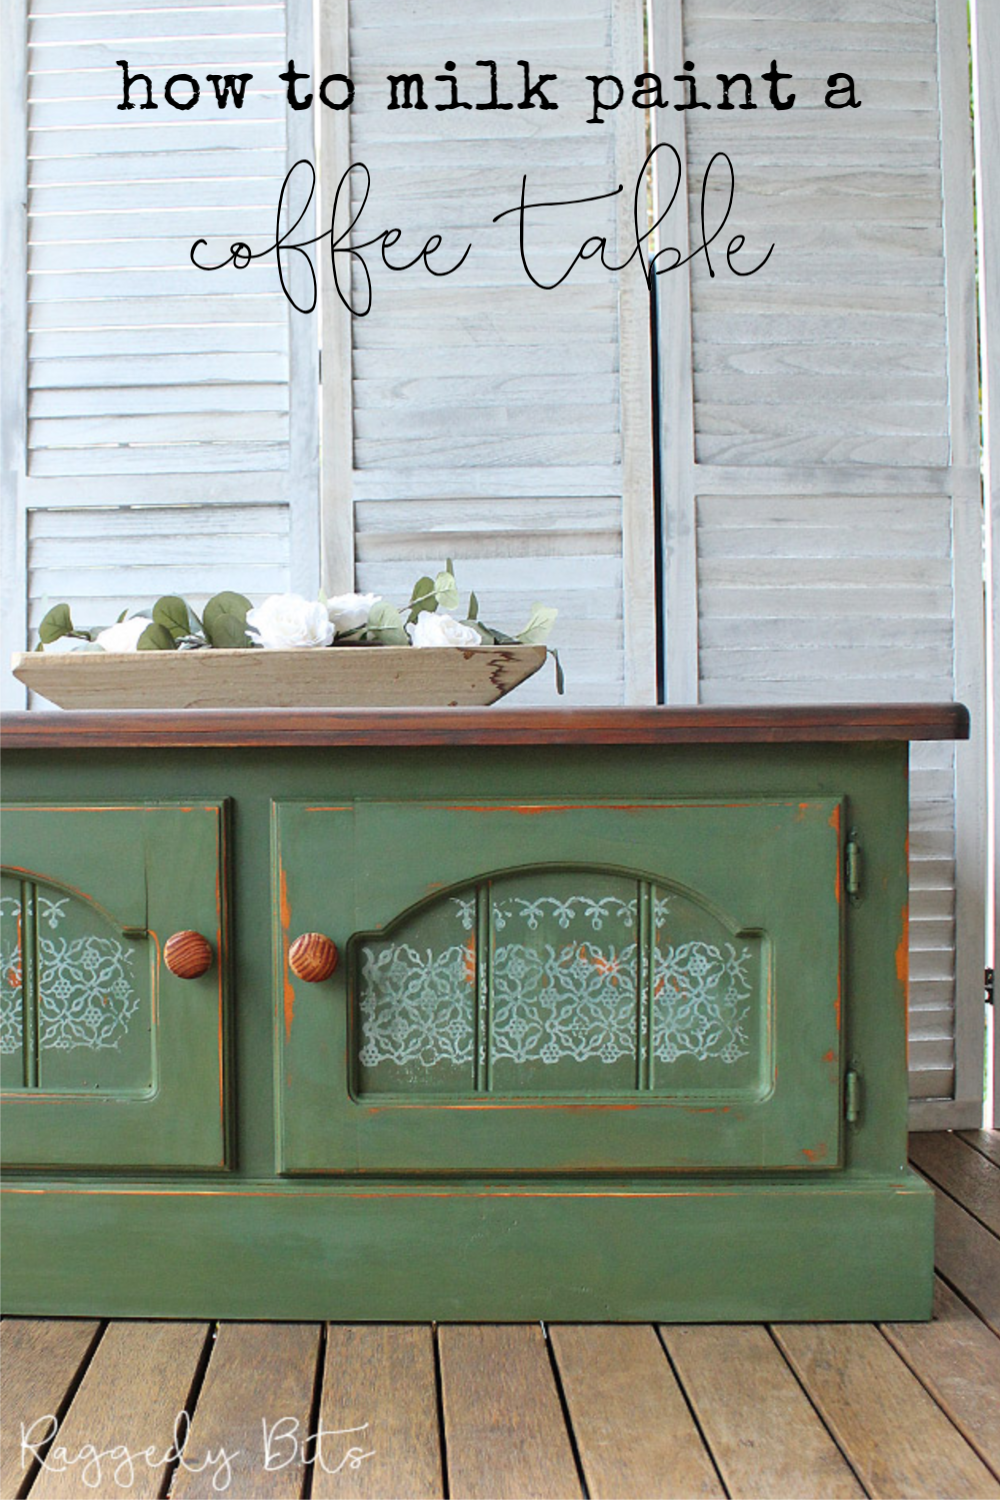 Goodbye orange pine! Sharing how to milk paint and stamp a coffee table to give it a fresh new look | www.raggedy-bits.com | #raggedybits #diy #mmsmilkpaint #boxwood #paintedfurniture #stamped #farmhouse #repurpose #upcycle